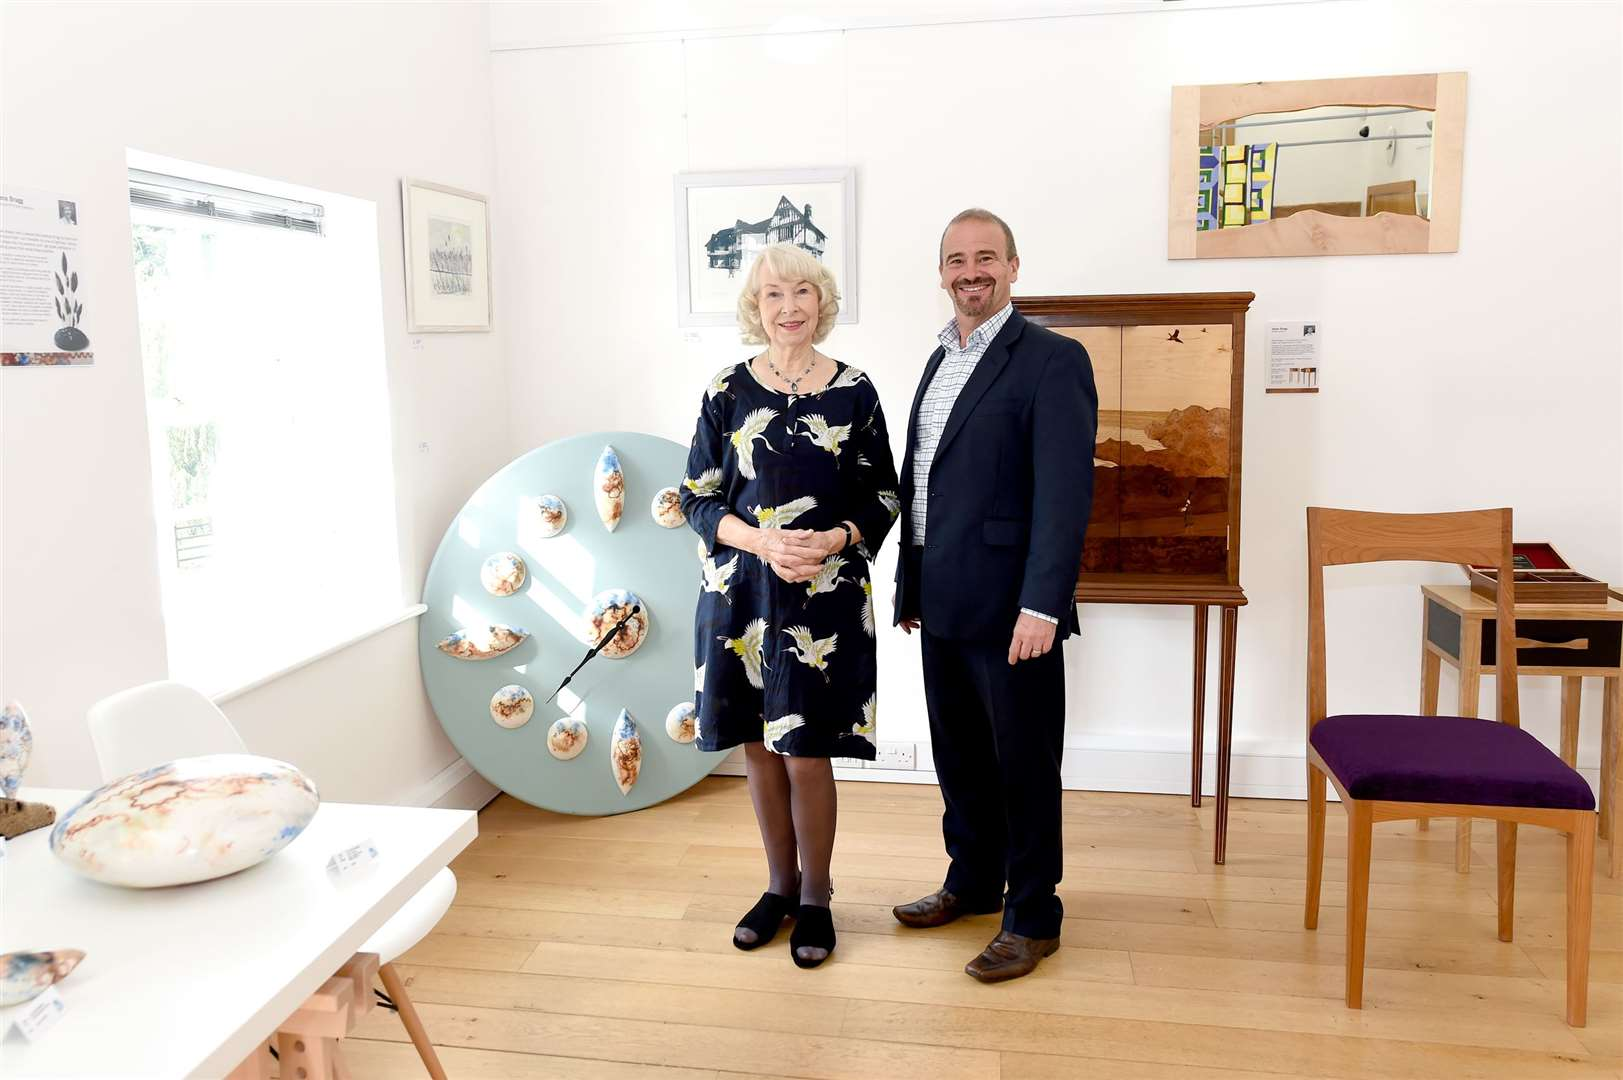 Mill Tye Gallery has a ew exhibition of local artists called Five Hands Exhibition...Pictured: Artist Rosie Perkins and gallery owner Peter Rumsey...PICTURE: Mecha Morton ... (16424189)